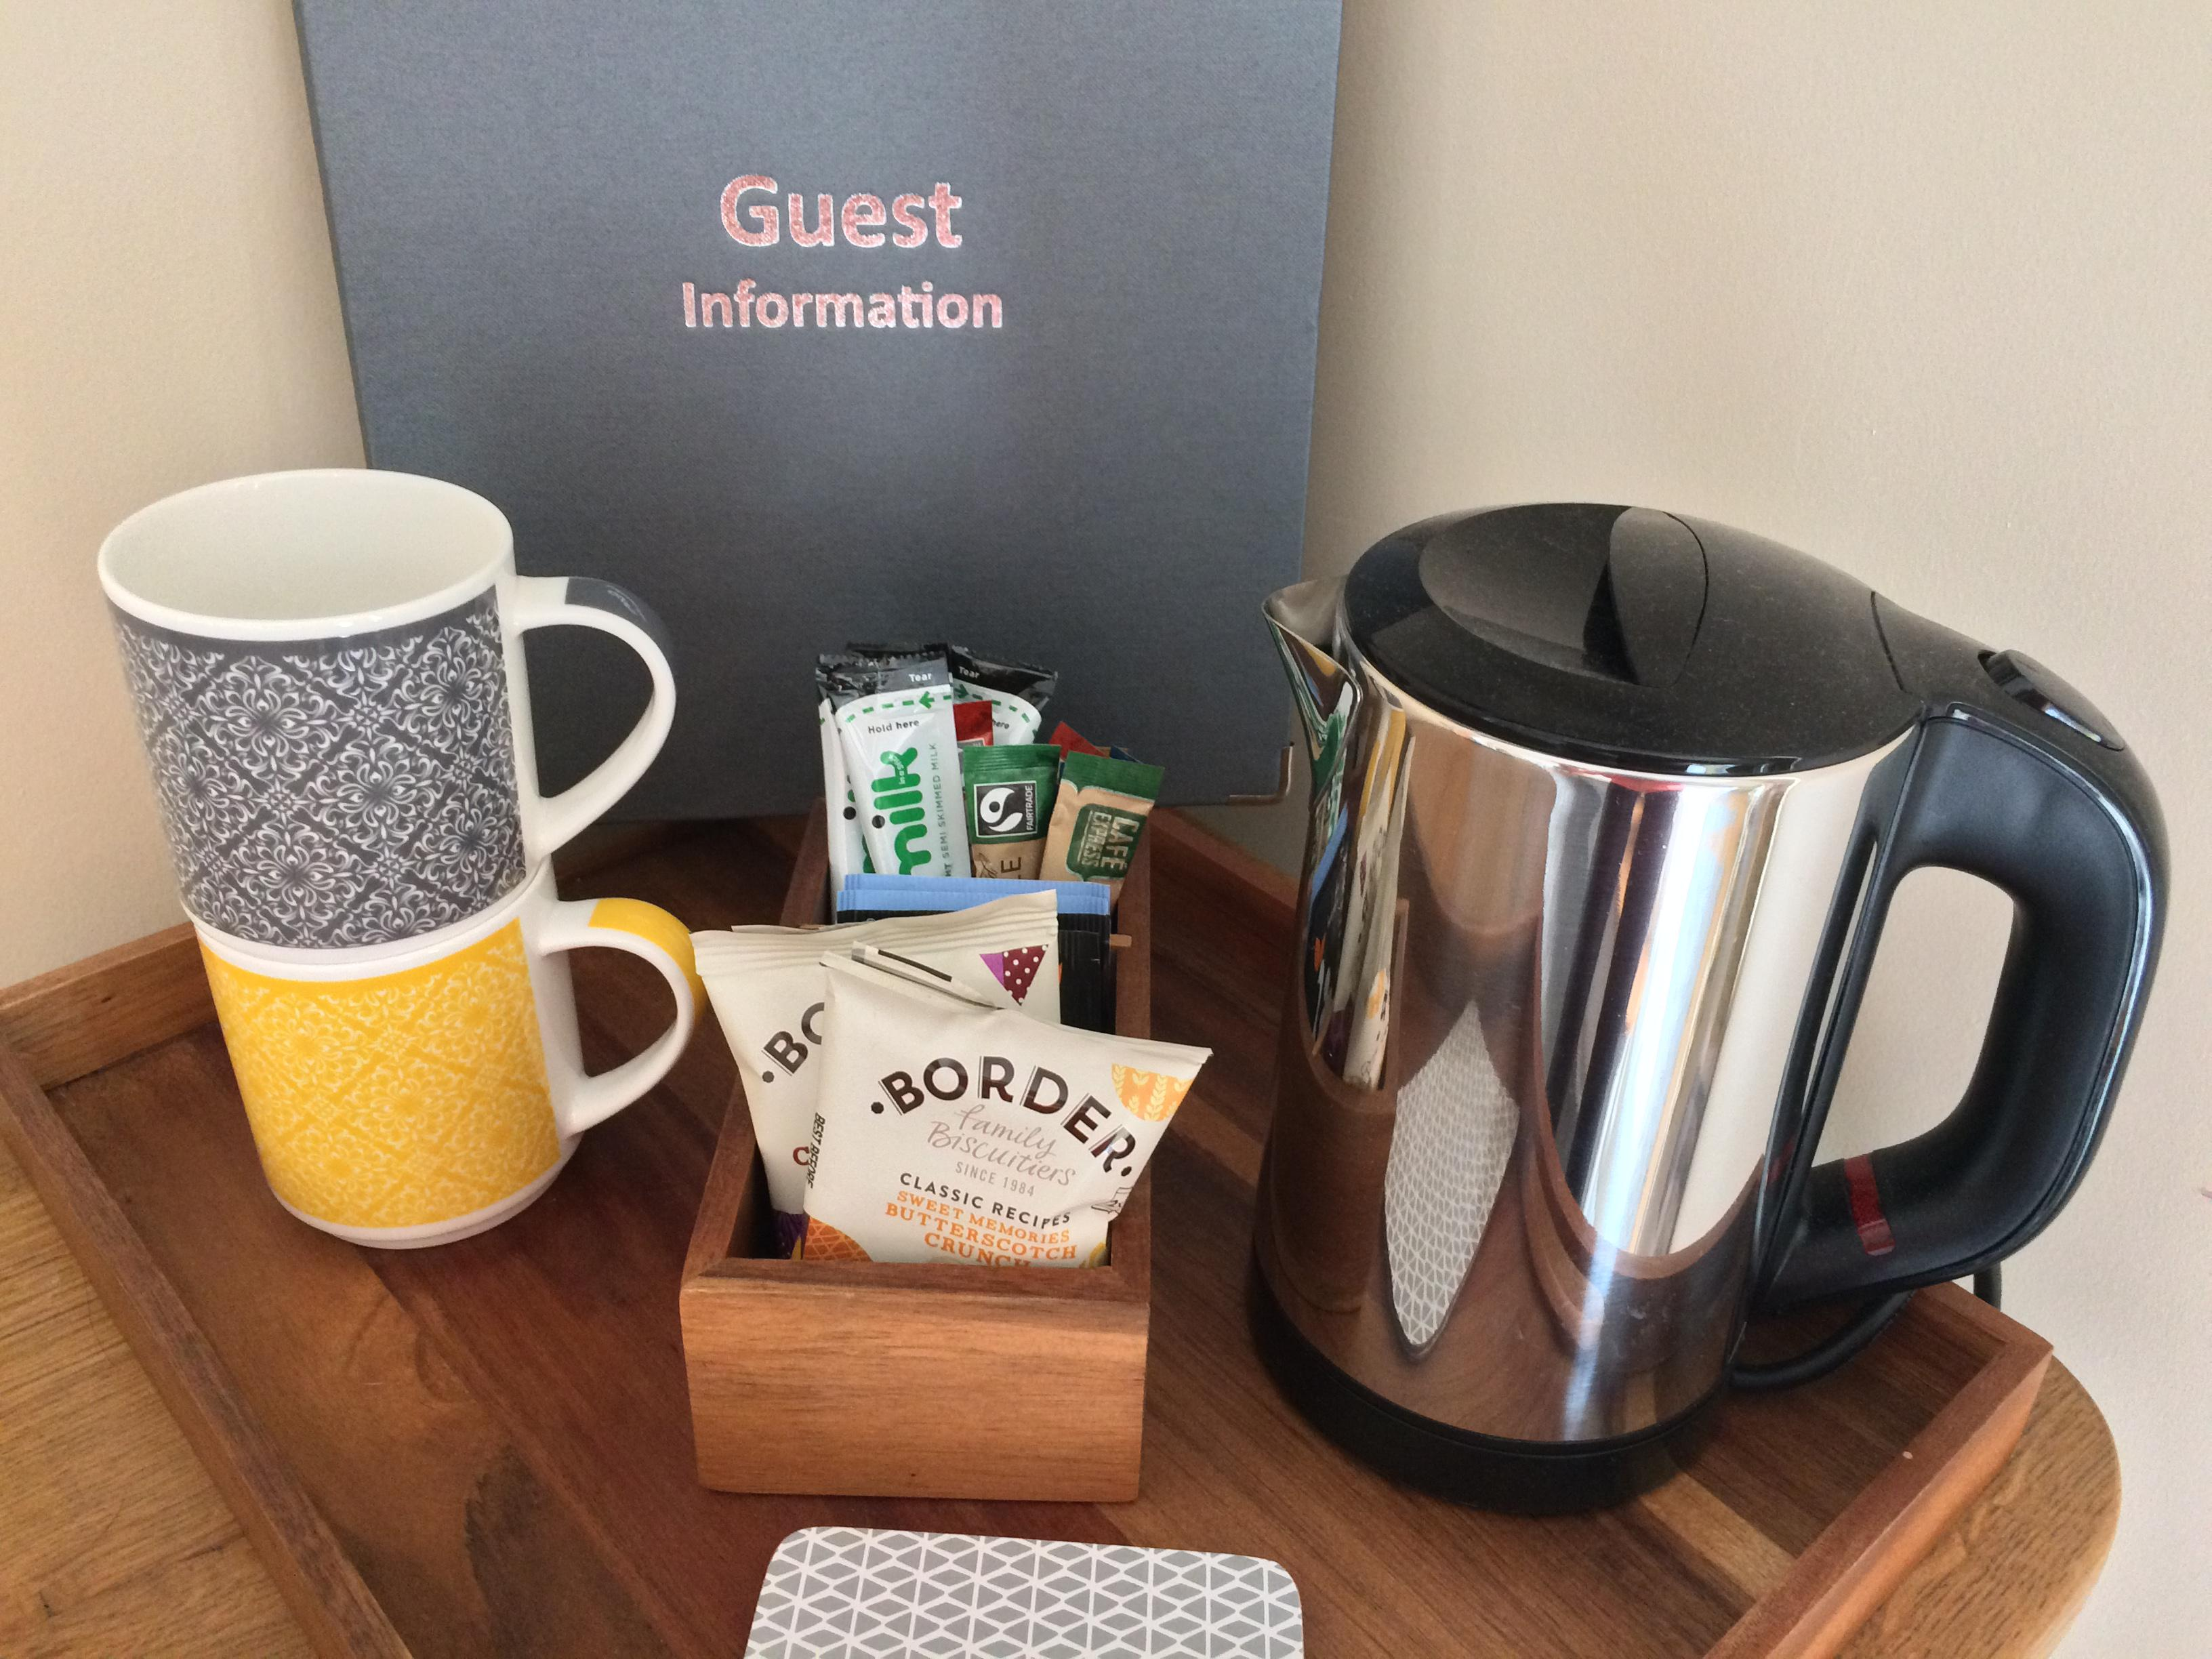 Hospitality Tray & Guest Information